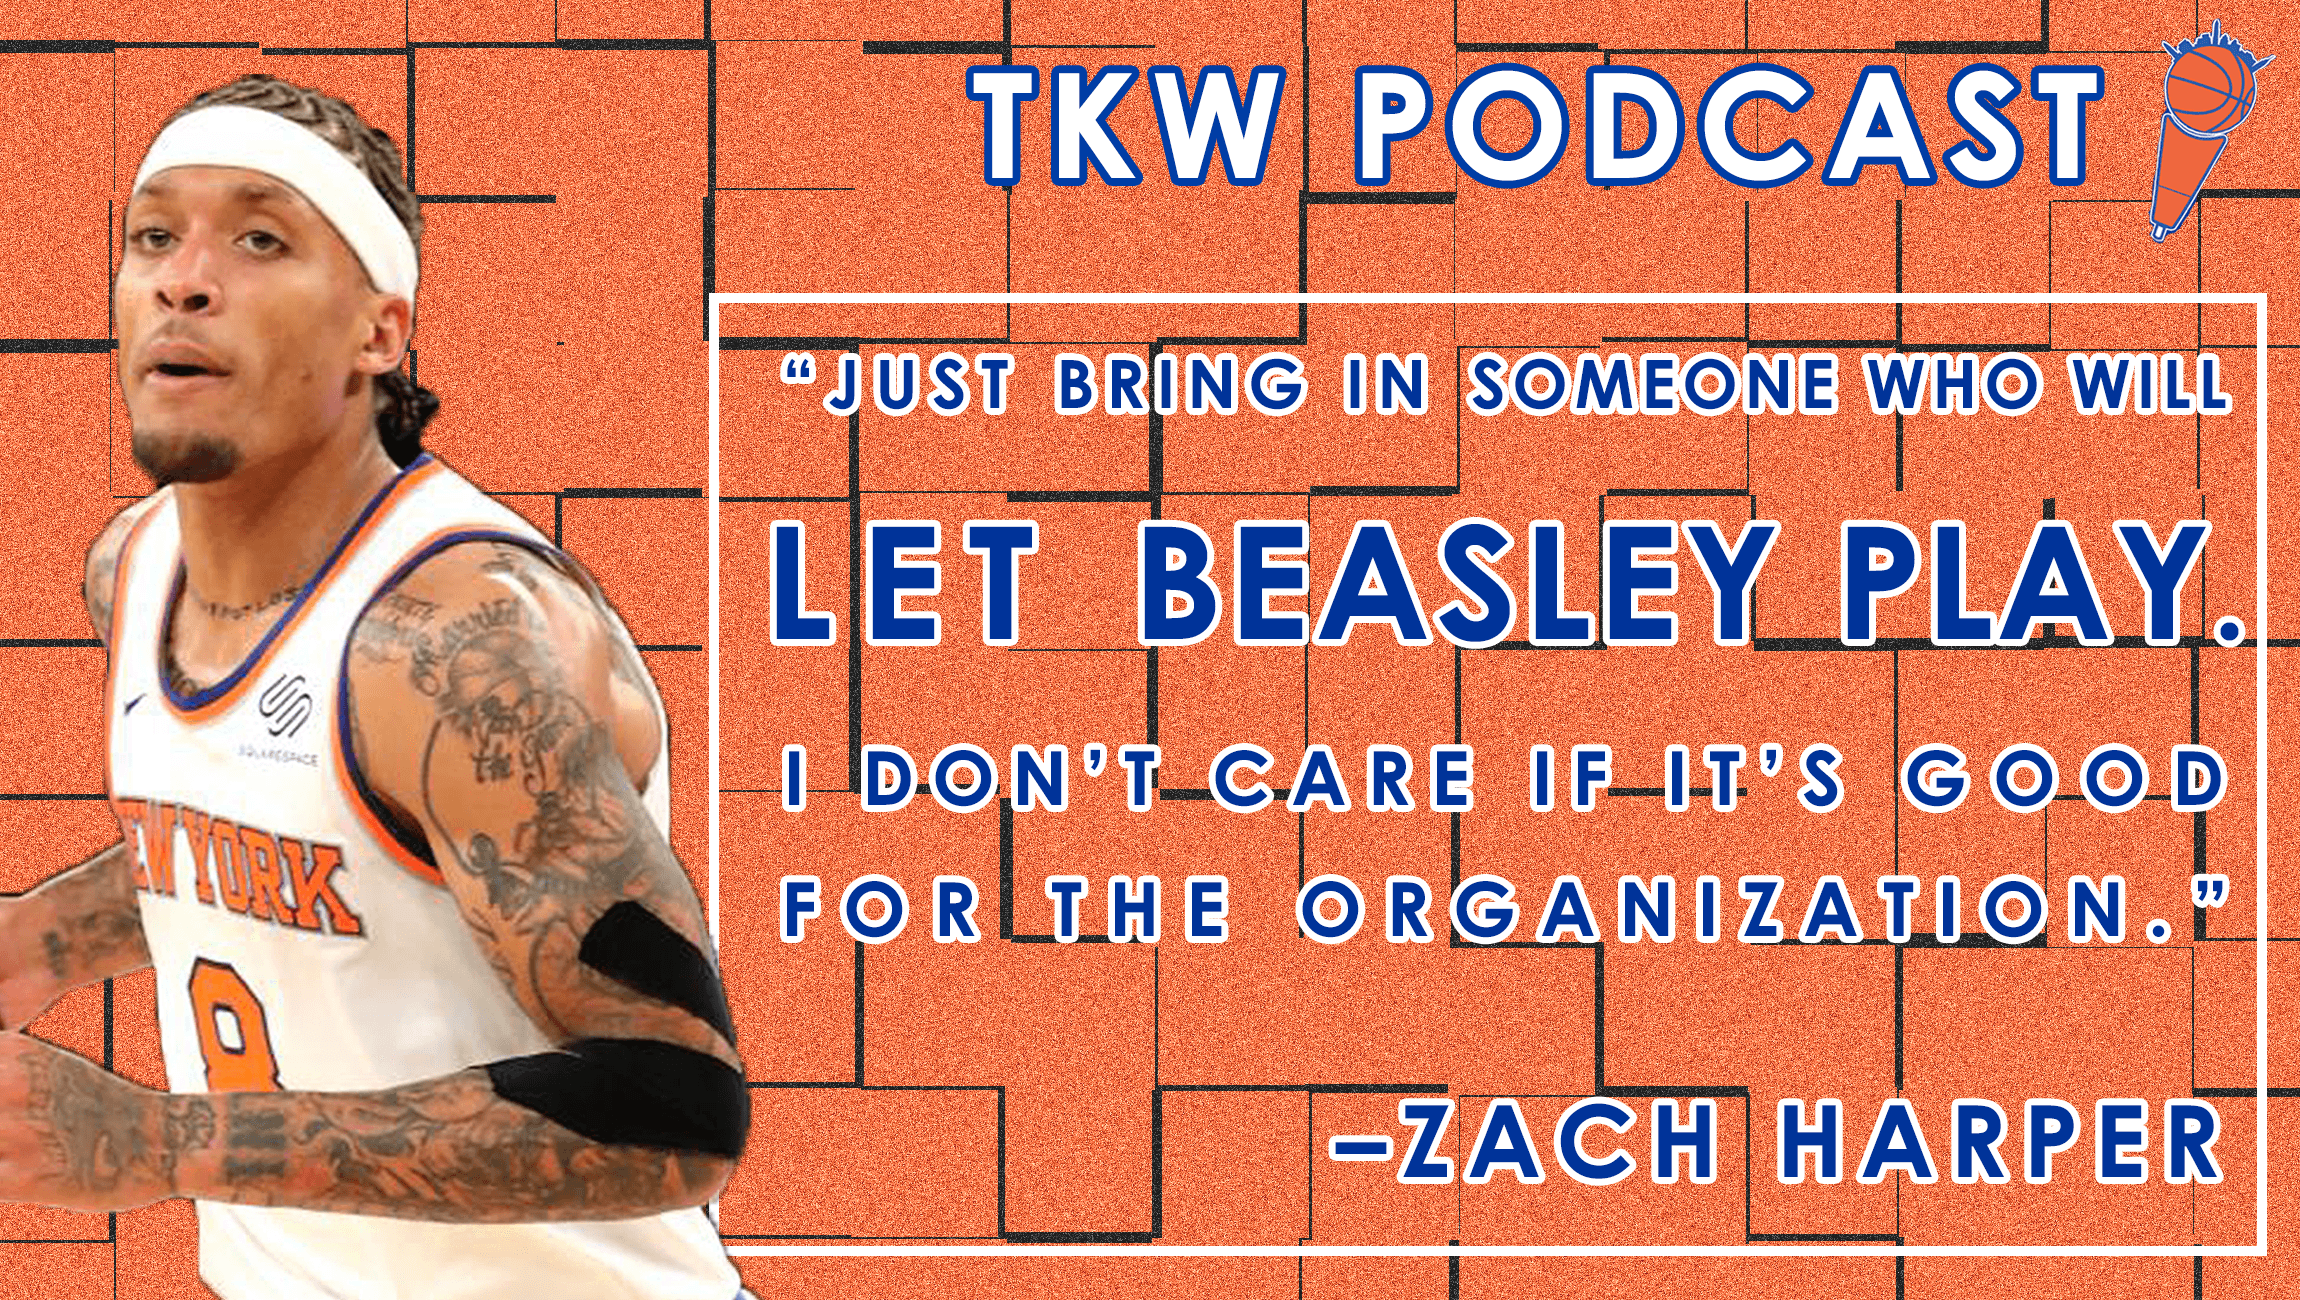 TKW Podcast: Michael Beasley's Margarita Mix feat. Zach Harper